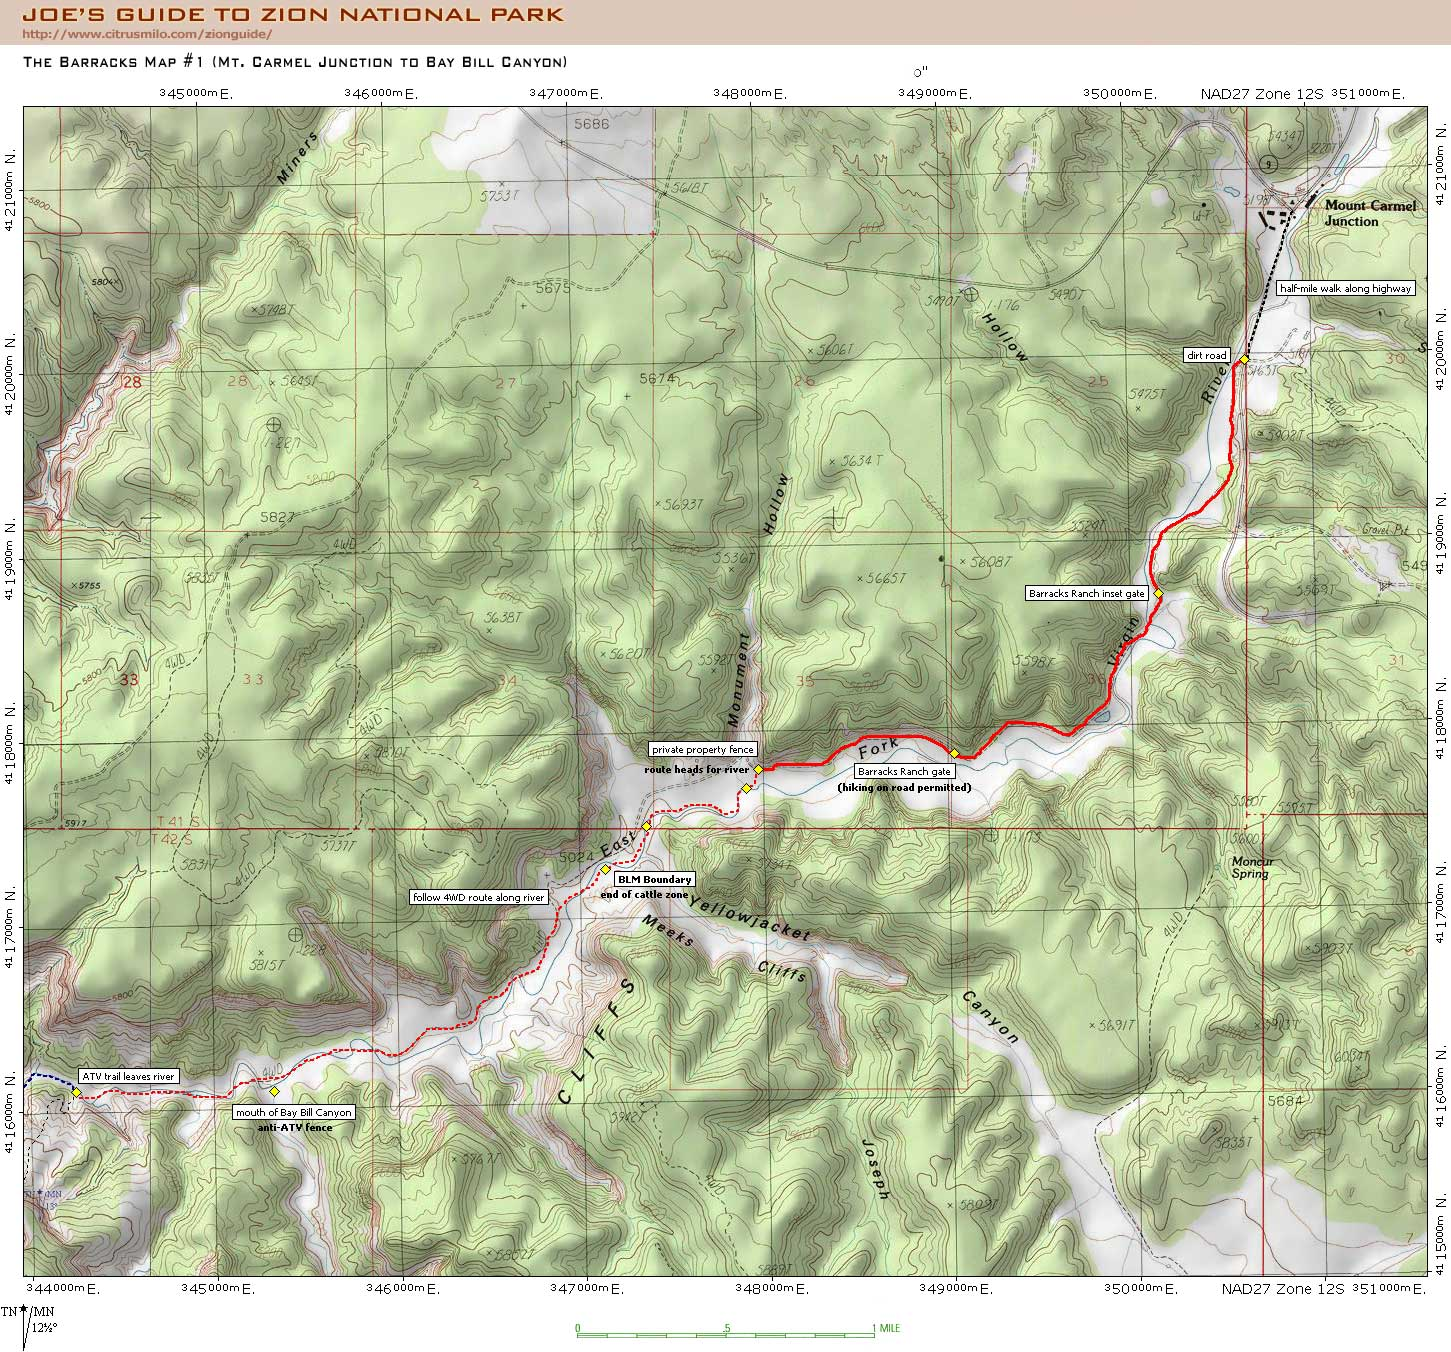 Joe's Guide to Zion National Park - The Barracks (Upper Parunuweap on canyonlands topographic map, grand mesa topographic map, blue ridge parkway topographic map, uinta mountains topographic map, delaware water gap topographic map, redwood national park topographic map, zion national park temperature map, eureka topographic map, simple contour lines topographic map, coconino plateau topographic map, horseshoe canyon topographic map, zion canyon campground map, sequoia national park topographic map, browse topographic map, west rim trail topographic map, el capitan topographic map, rockville topographic map, hawaii volcanoes national park topographic map, panguitch lake topographic map, red rock canyon topographic map,